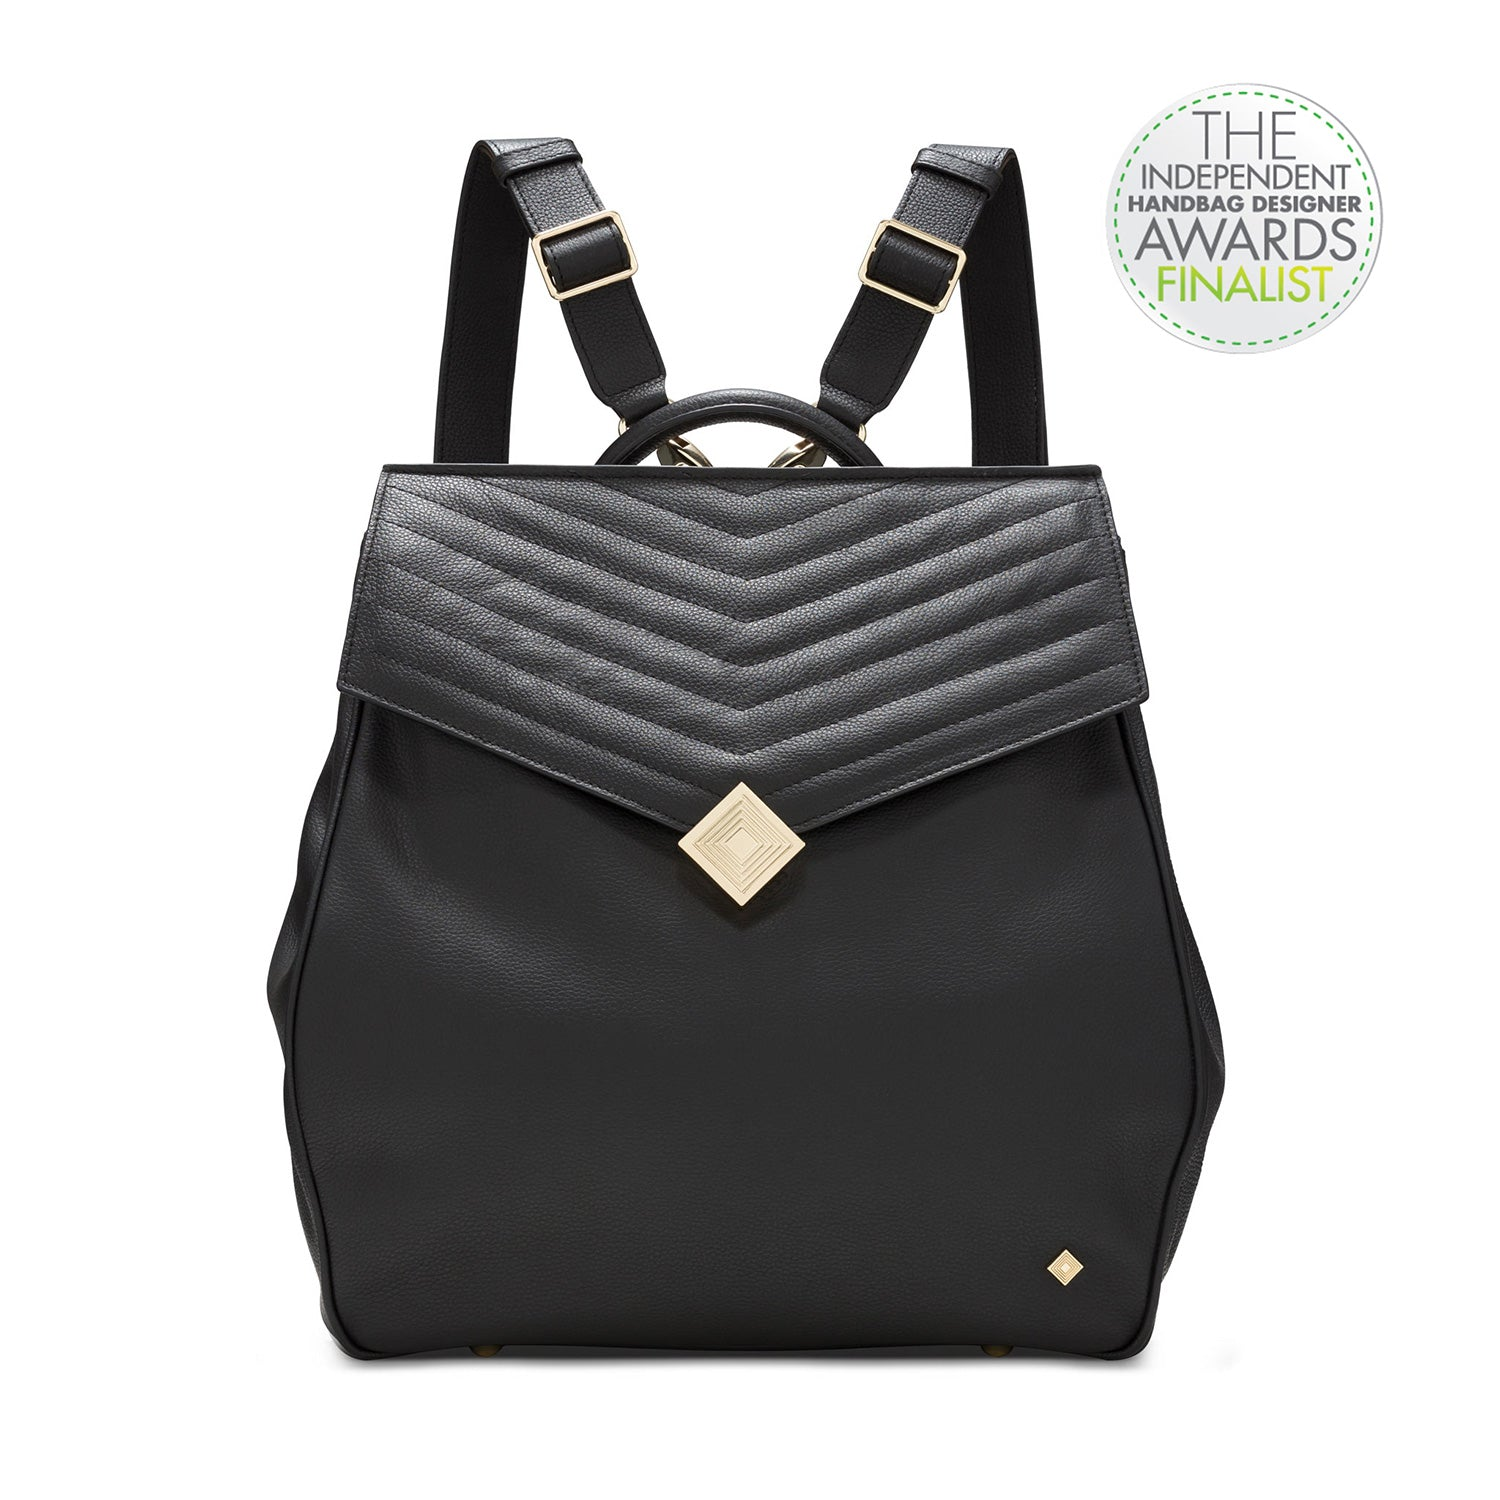 Journey Convertible Backpack - Jennifer Hamley luxury leather handbags and laptop bag for working women